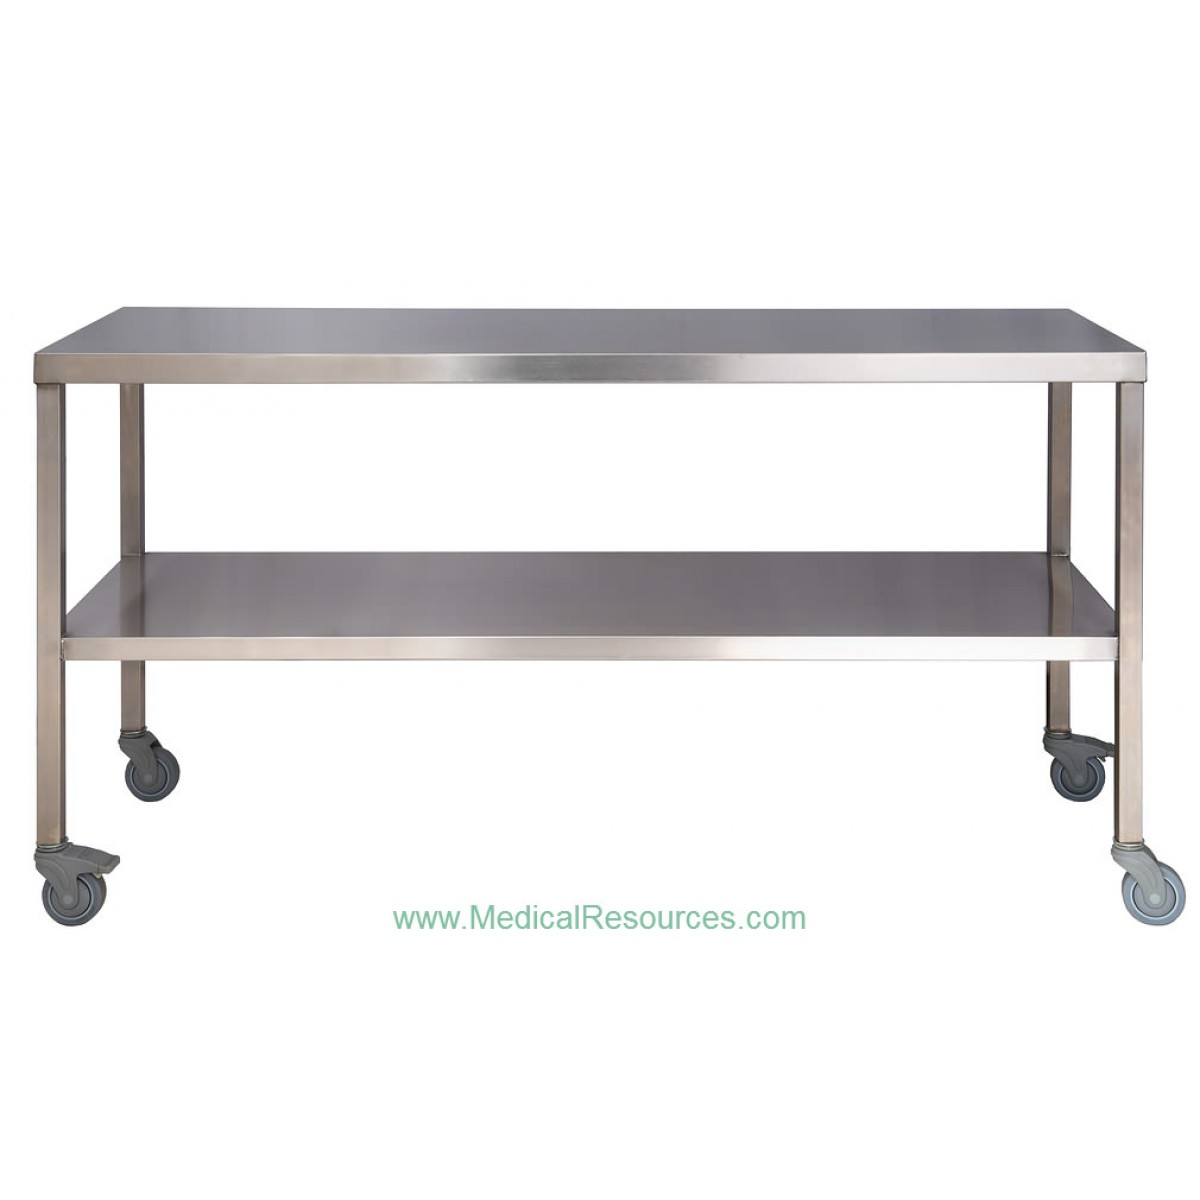 Medwurx operating room instrument back tables sale for Table use th